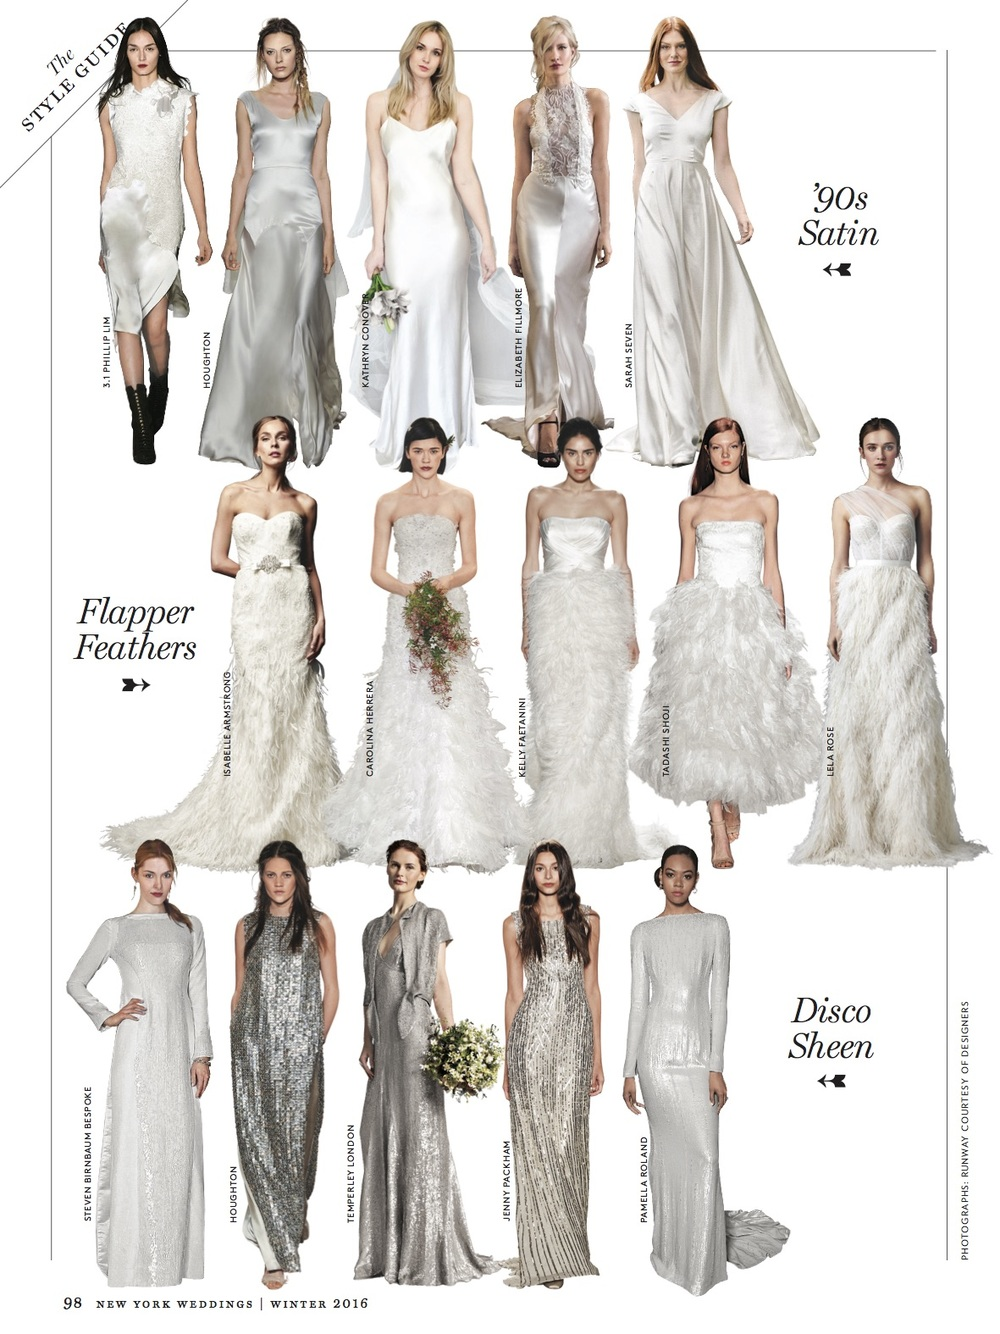 NY Weddings Summer 2016